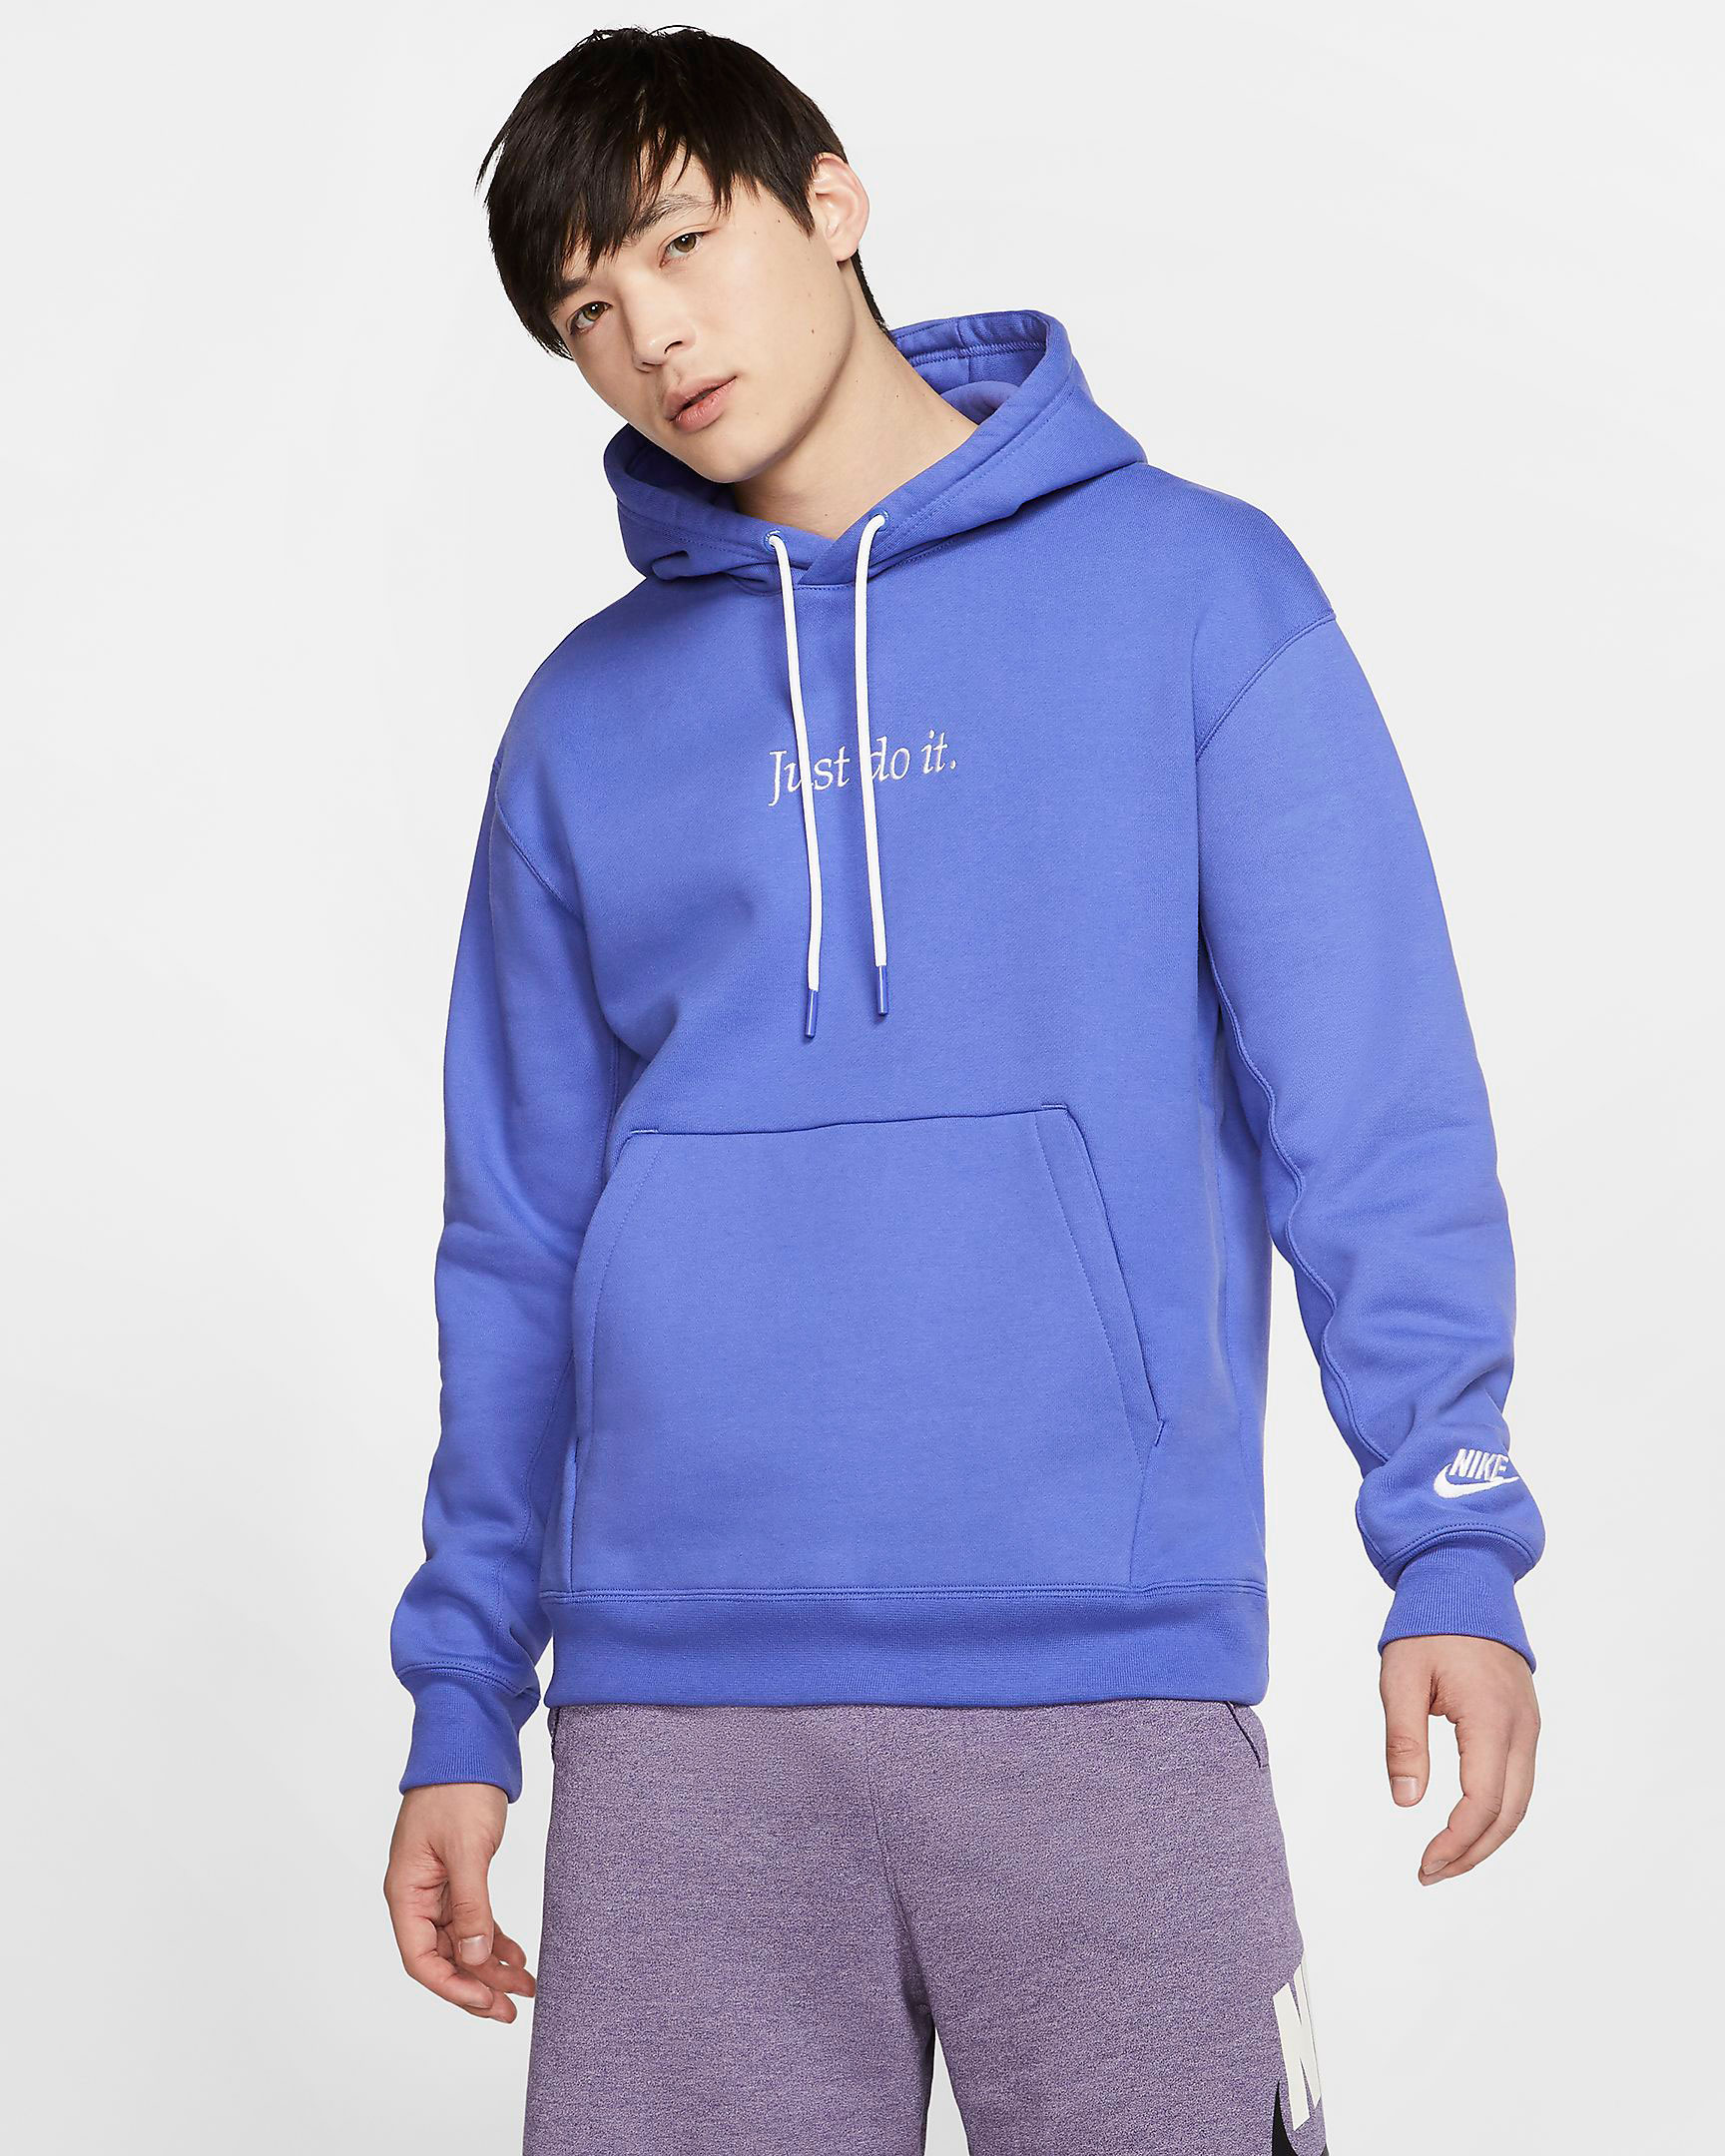 nike-sportswear-jdi-just-do-it-hoodie-purple